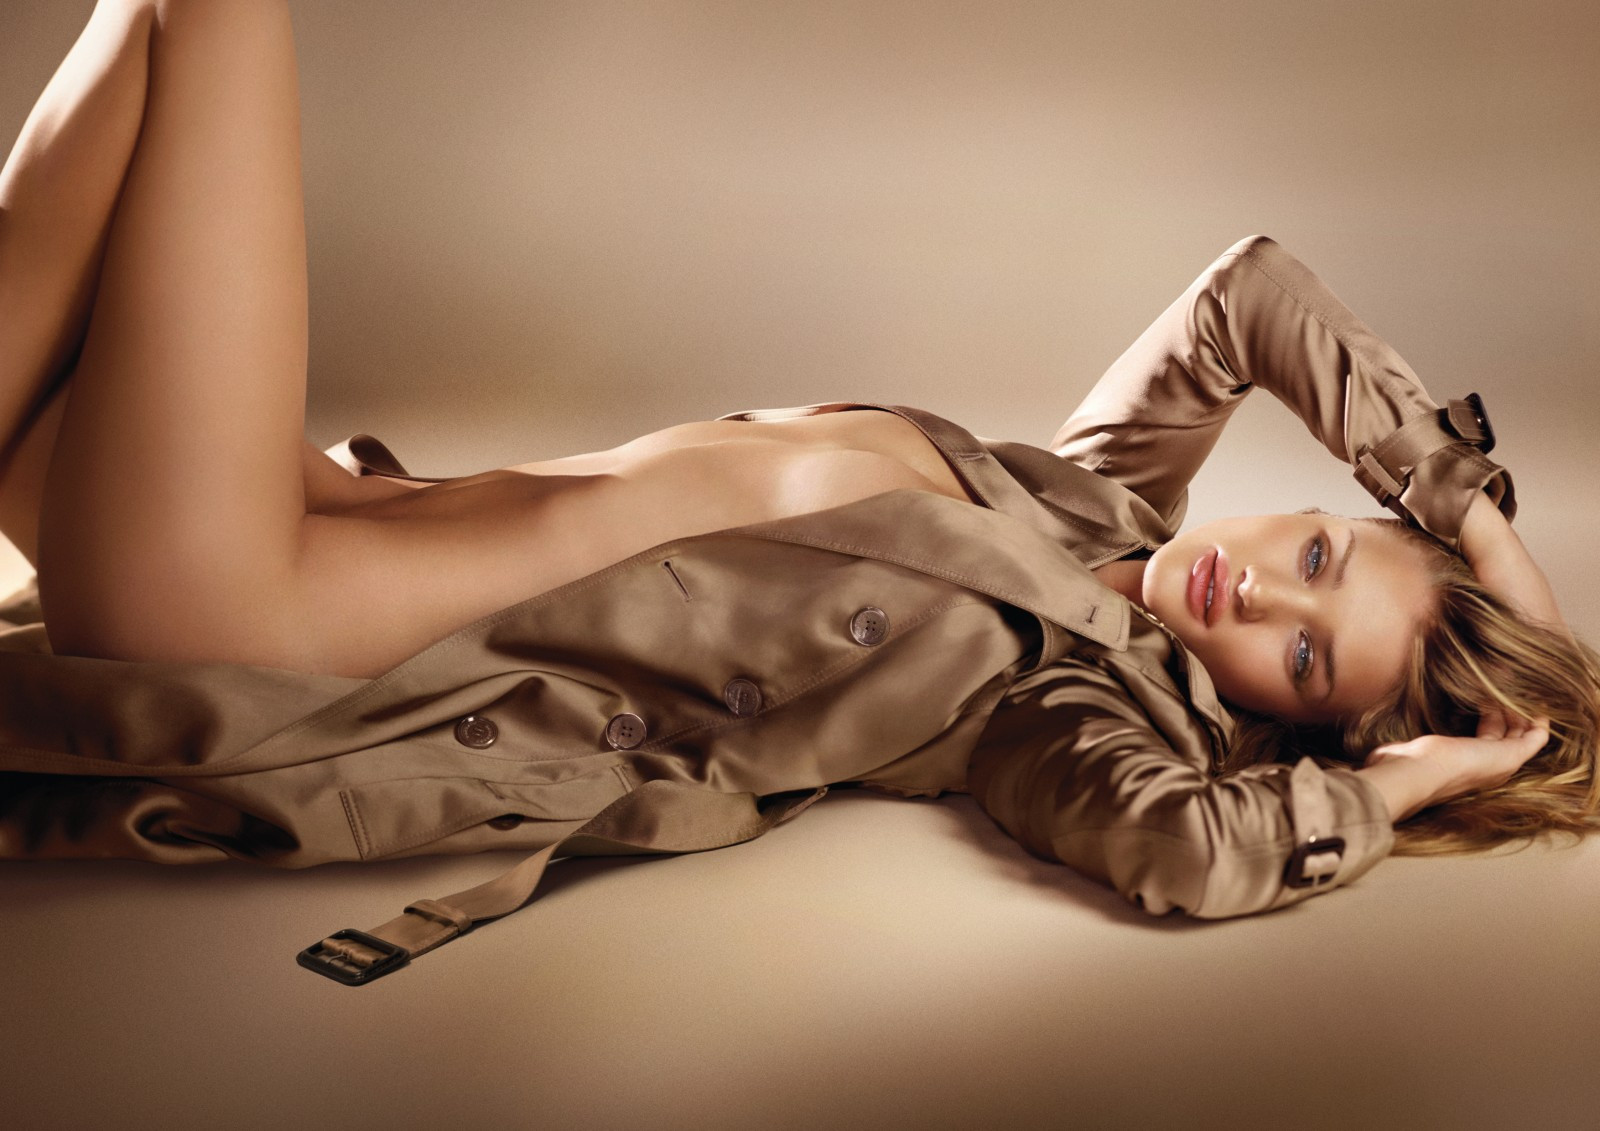 burberry_body_fragrance_campaign_featuring_rosie_huntington-whiteley.jpg